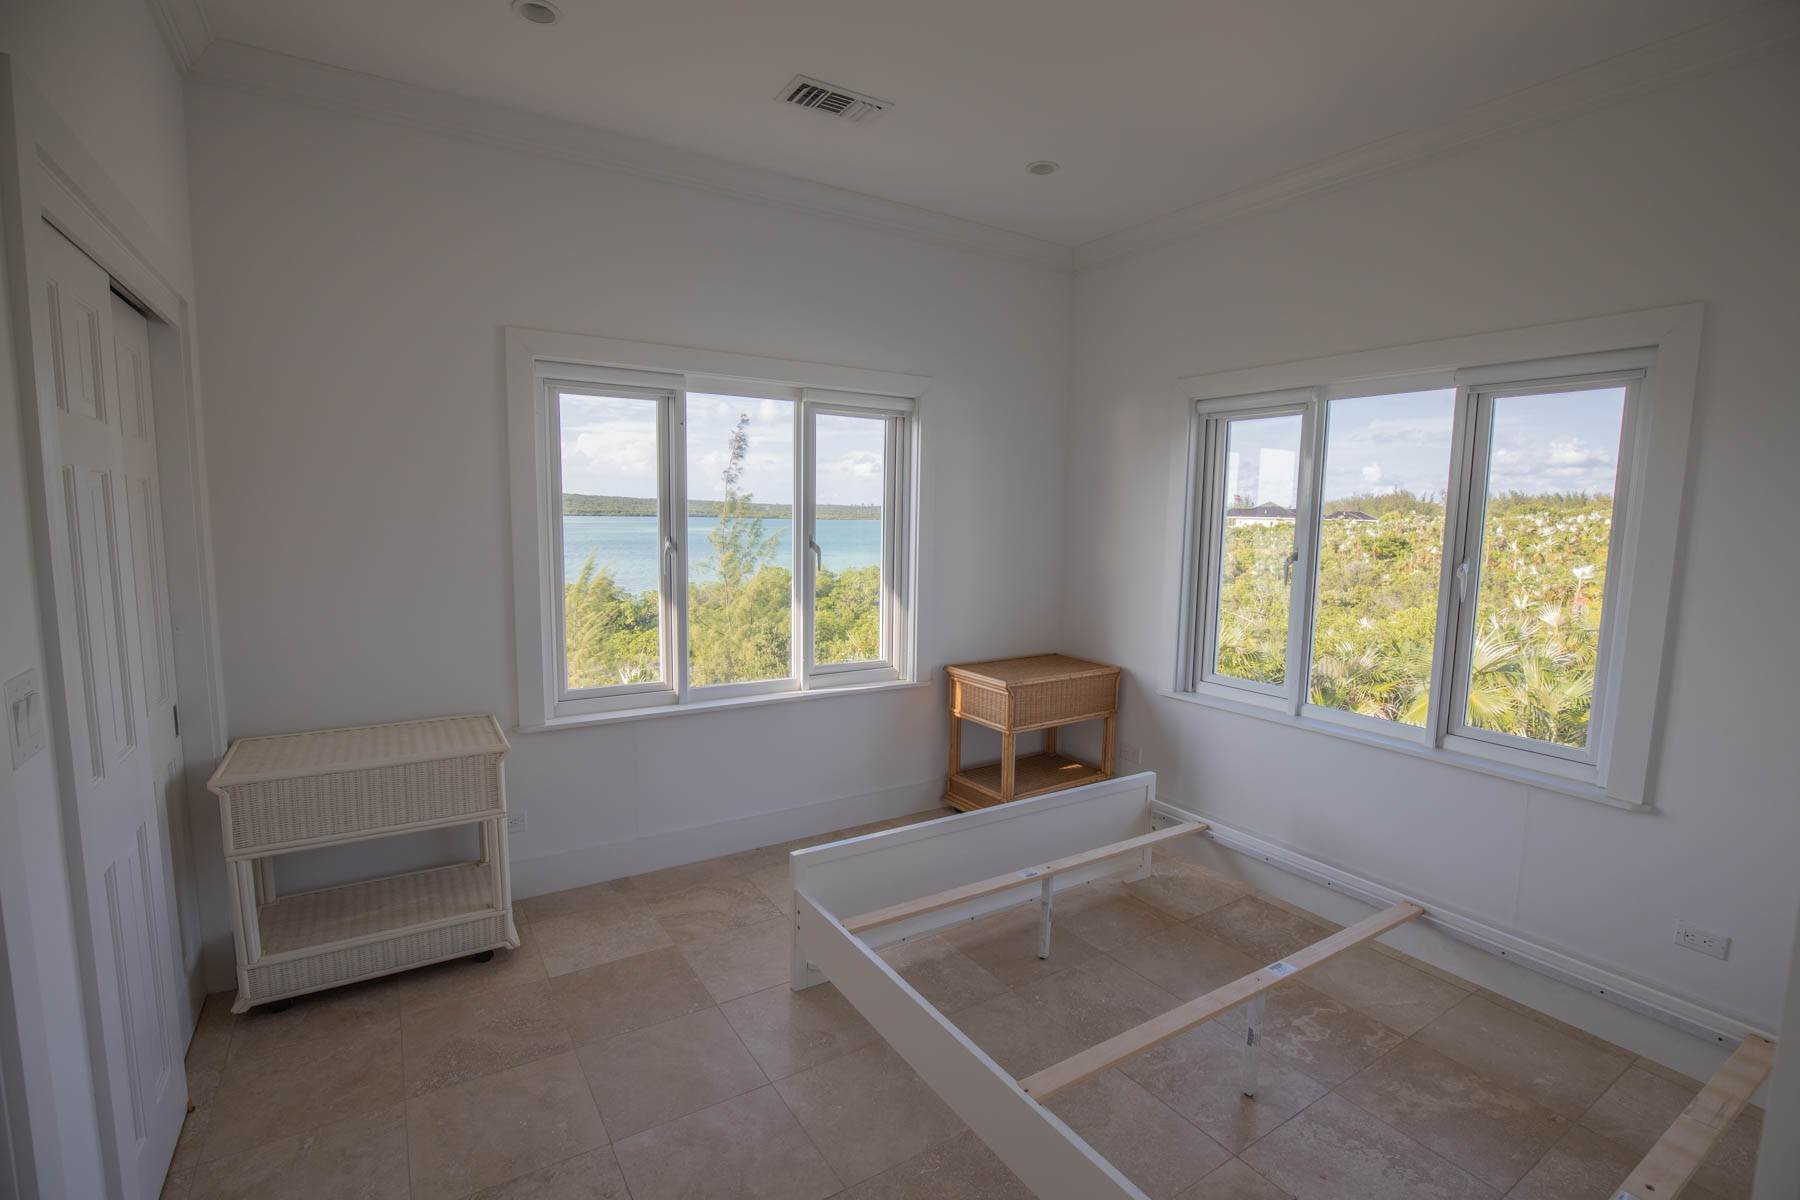 13. Single Family Homes for Sale at Savannah Sound Home - Windermere Island - MLS 44478 Windermere Island, Eleuthera, Bahamas